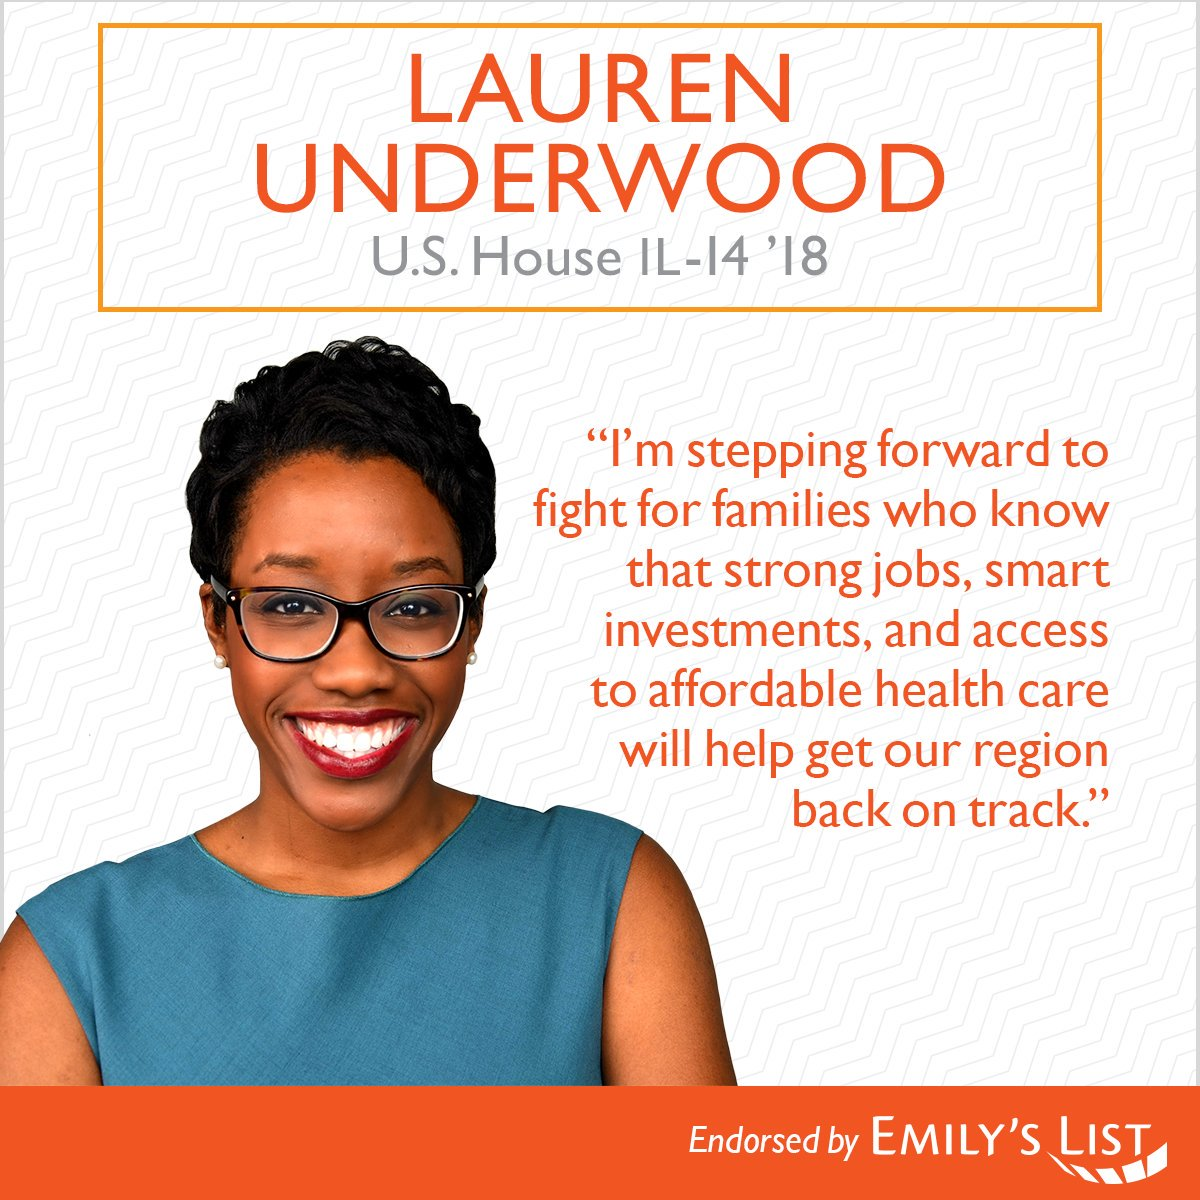 Are you registered to vote? vote.org   Last day to register to vote in IL: 2/20 Election Day: 3/20  FOLLOW: ➡️ @LUnderwood630 SUPPORT: ➡️ tinyurl.com/y89gntu4  VOLUNTEER: ➡️ underwoodforcongress.com/volunteer/  #TuesdayThoughts  #MorningJoe #COTD #bluewave2018🌊 #IL14